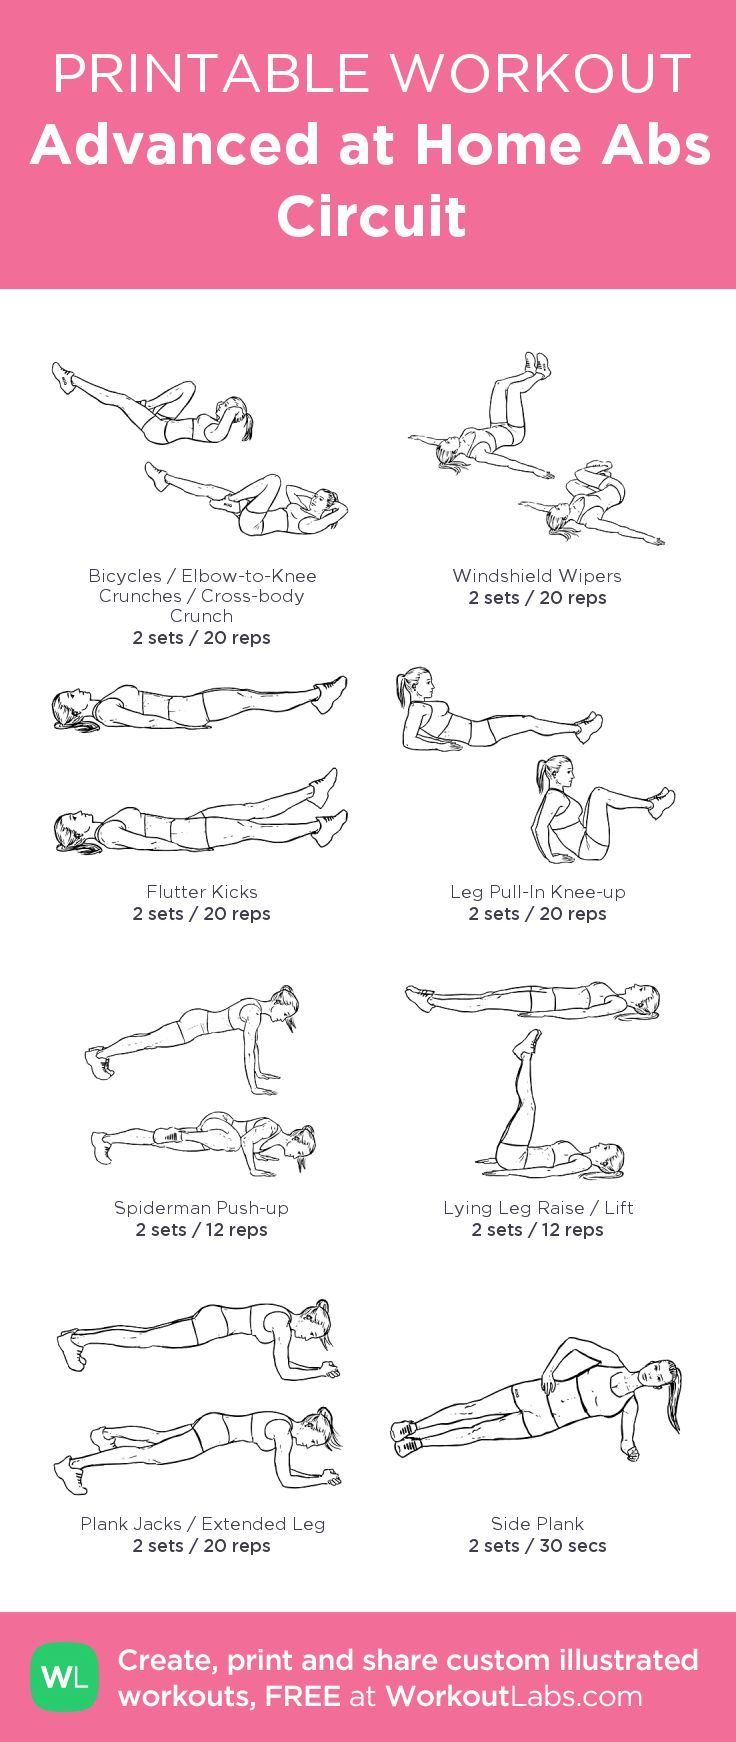 Advanced at Home Abs Circuit: my visual workout created at WorkoutLabs.com • Click through to customize and download as a FREE PDF! #customworkout